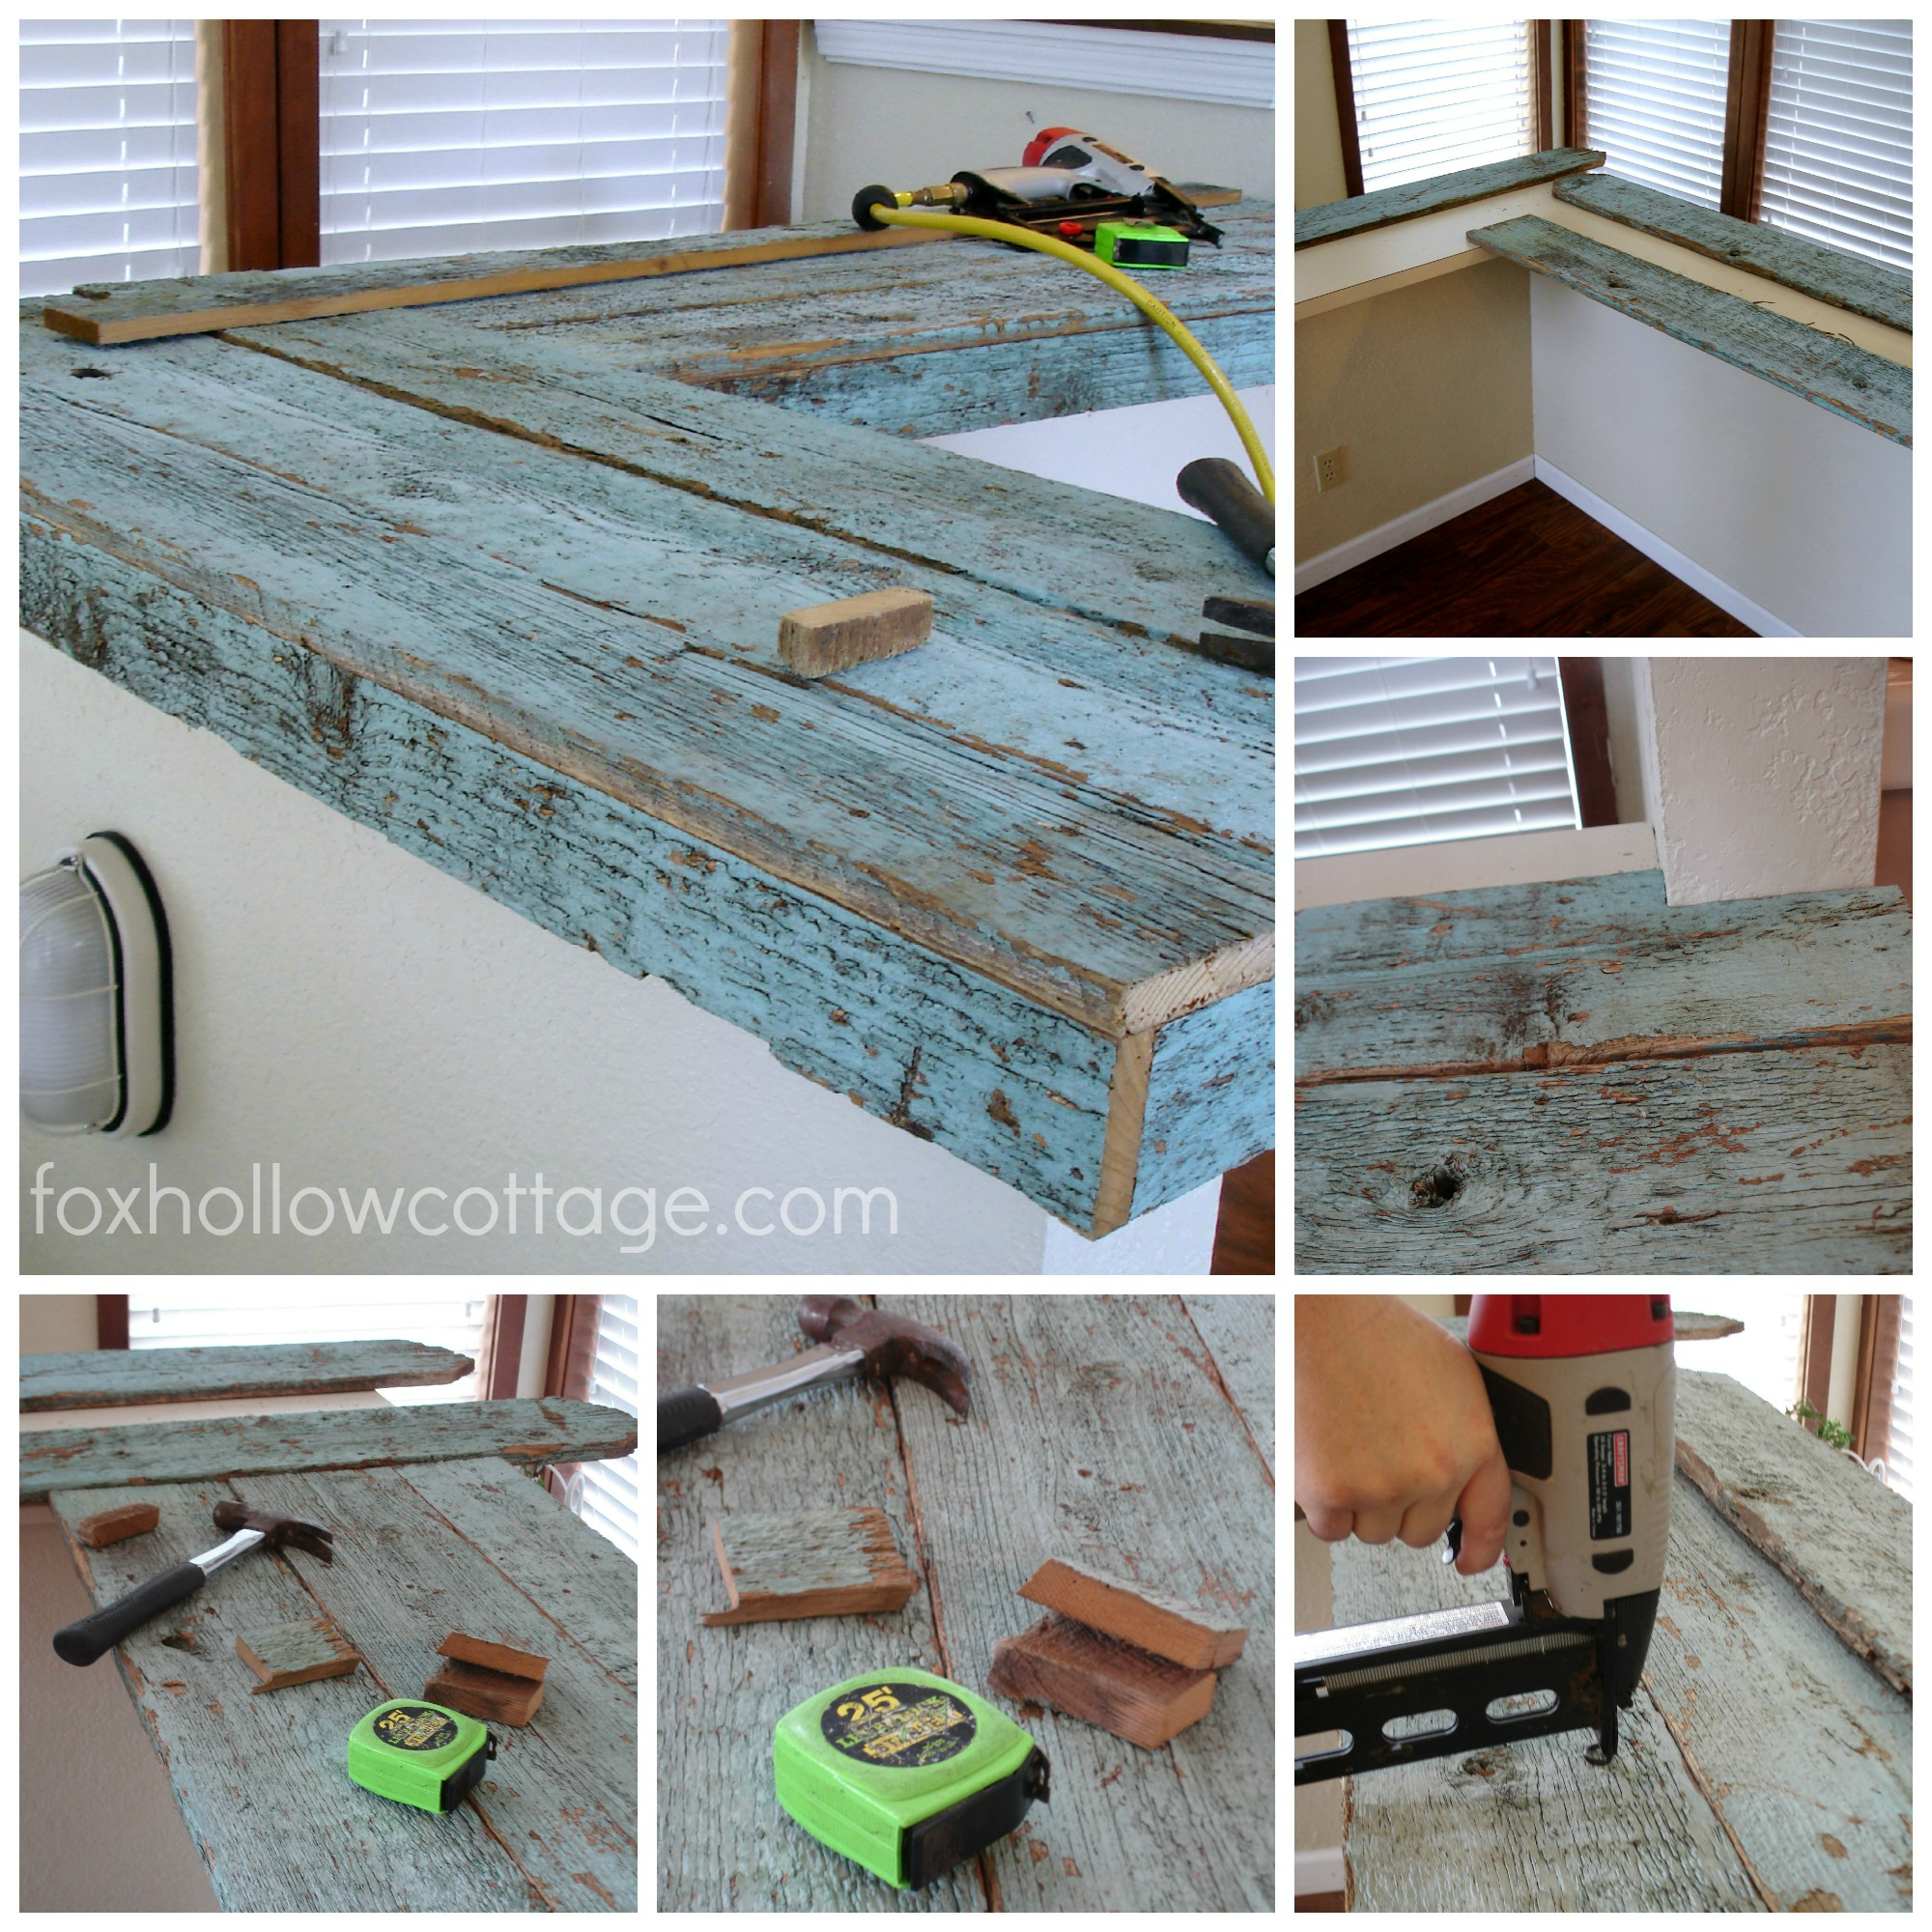 How To Make Wood Kitchen Countertops How To Make A Wood Fence Board Countertop Fox Hollow Cottage